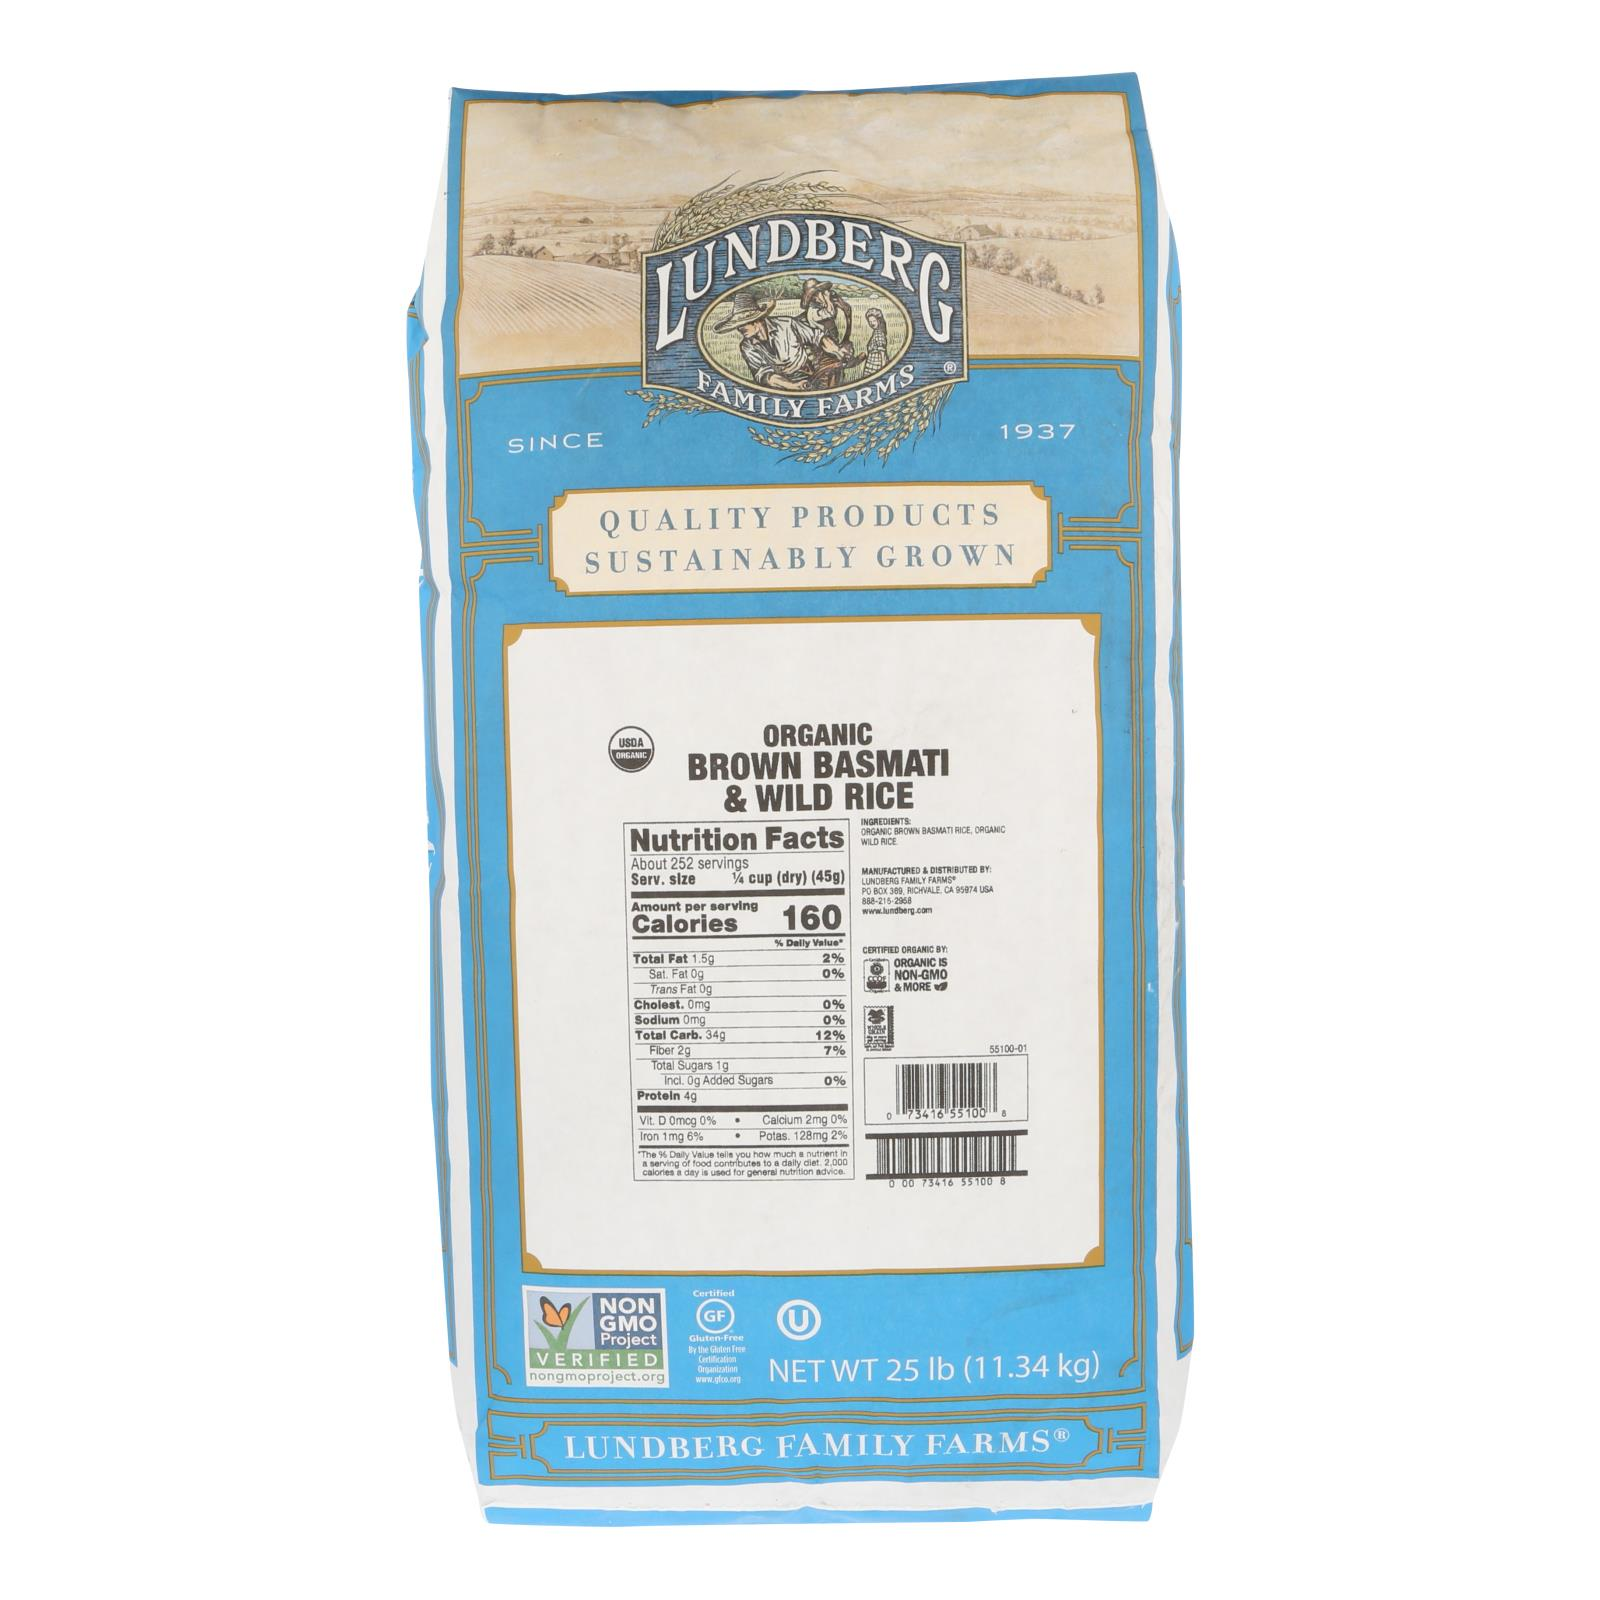 Lundberg Family Farms - Rice - Basmati Brown and Wild Rice Blend - Case of 25 - # %count(alt)